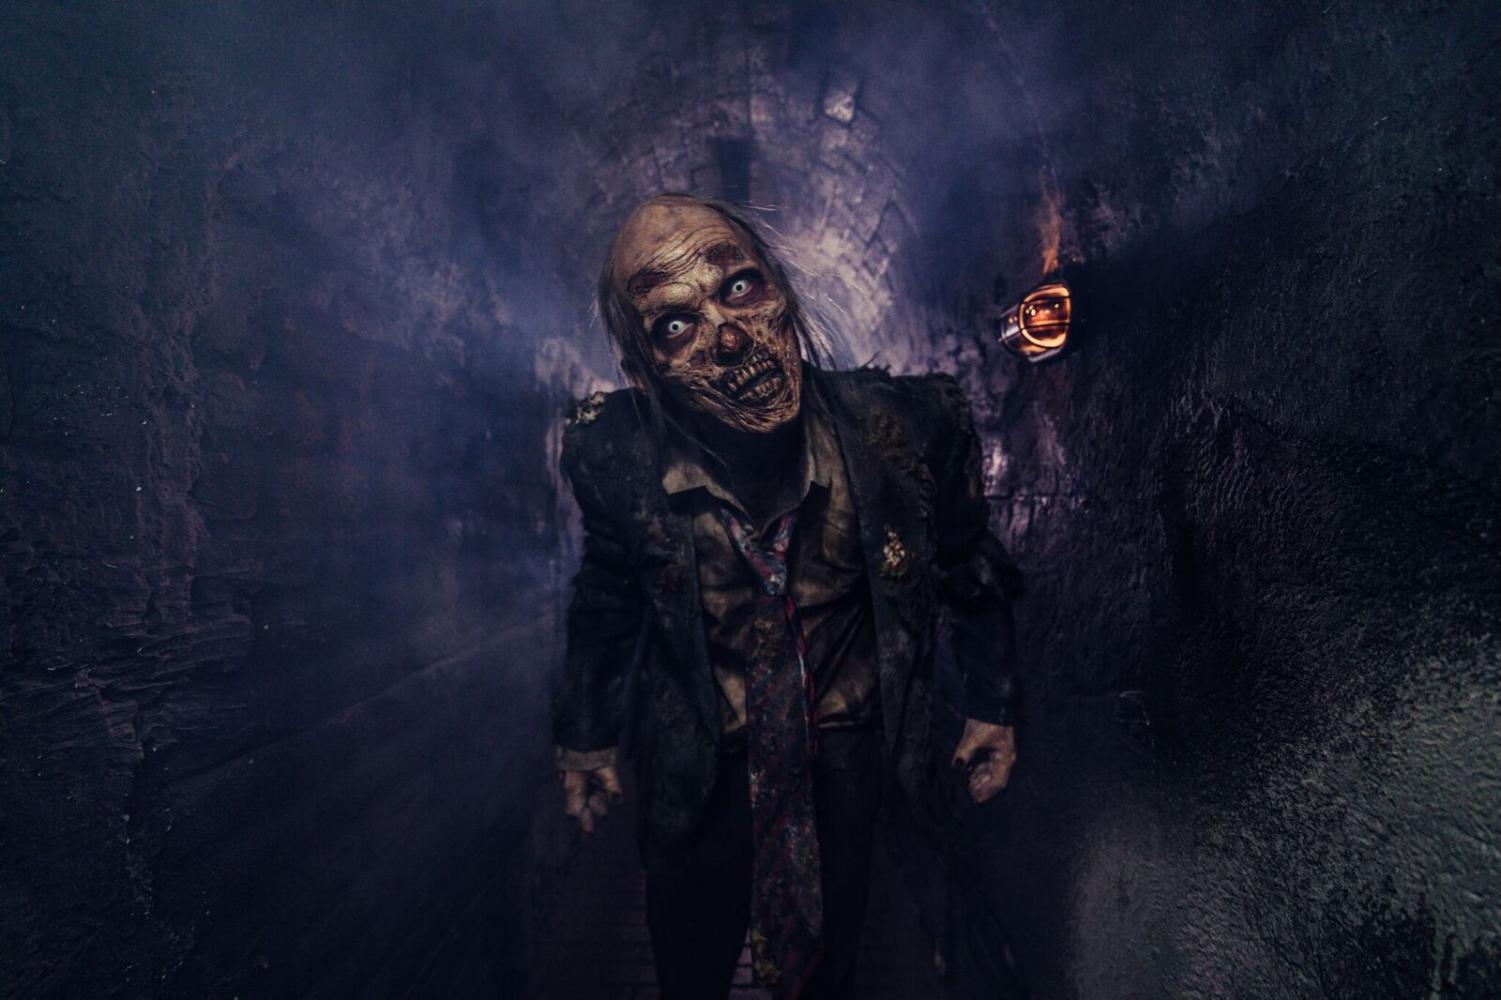 Actor from the House of Torment haunted attraction.